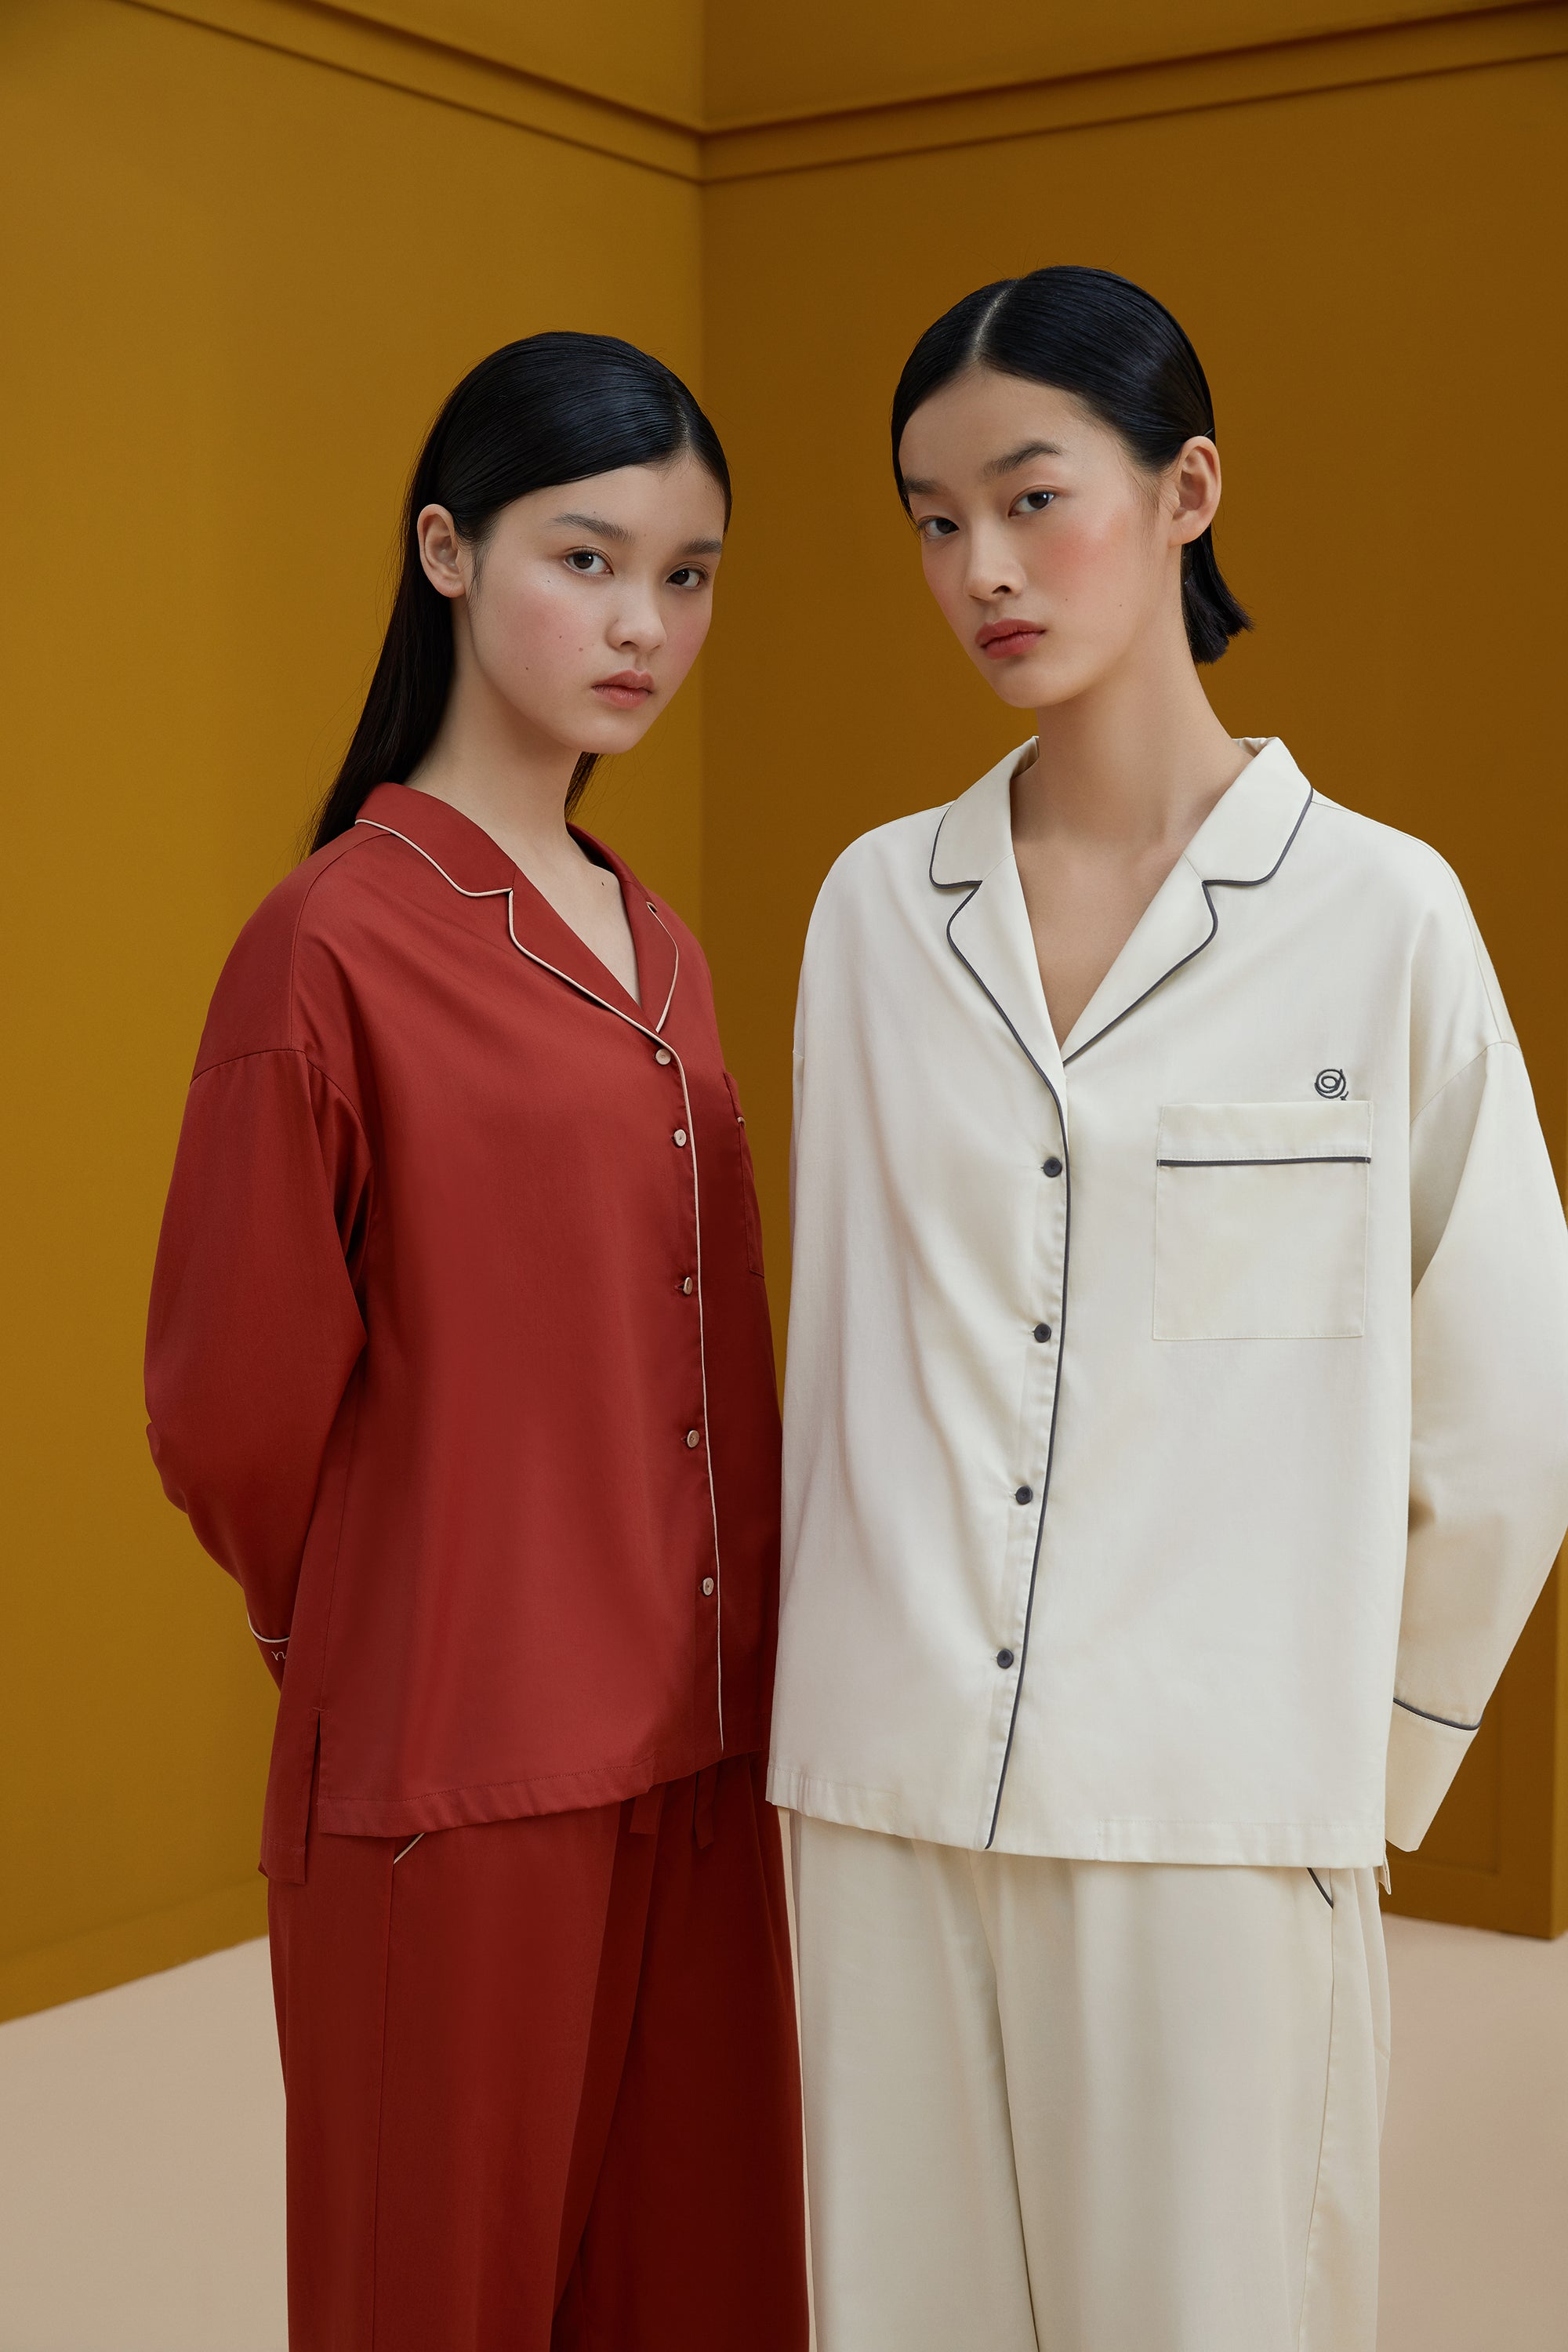 Models wearing NEIWAI's Classic Embroidered Pajama Shirt in Baked Clay (left) and Pristine (right).